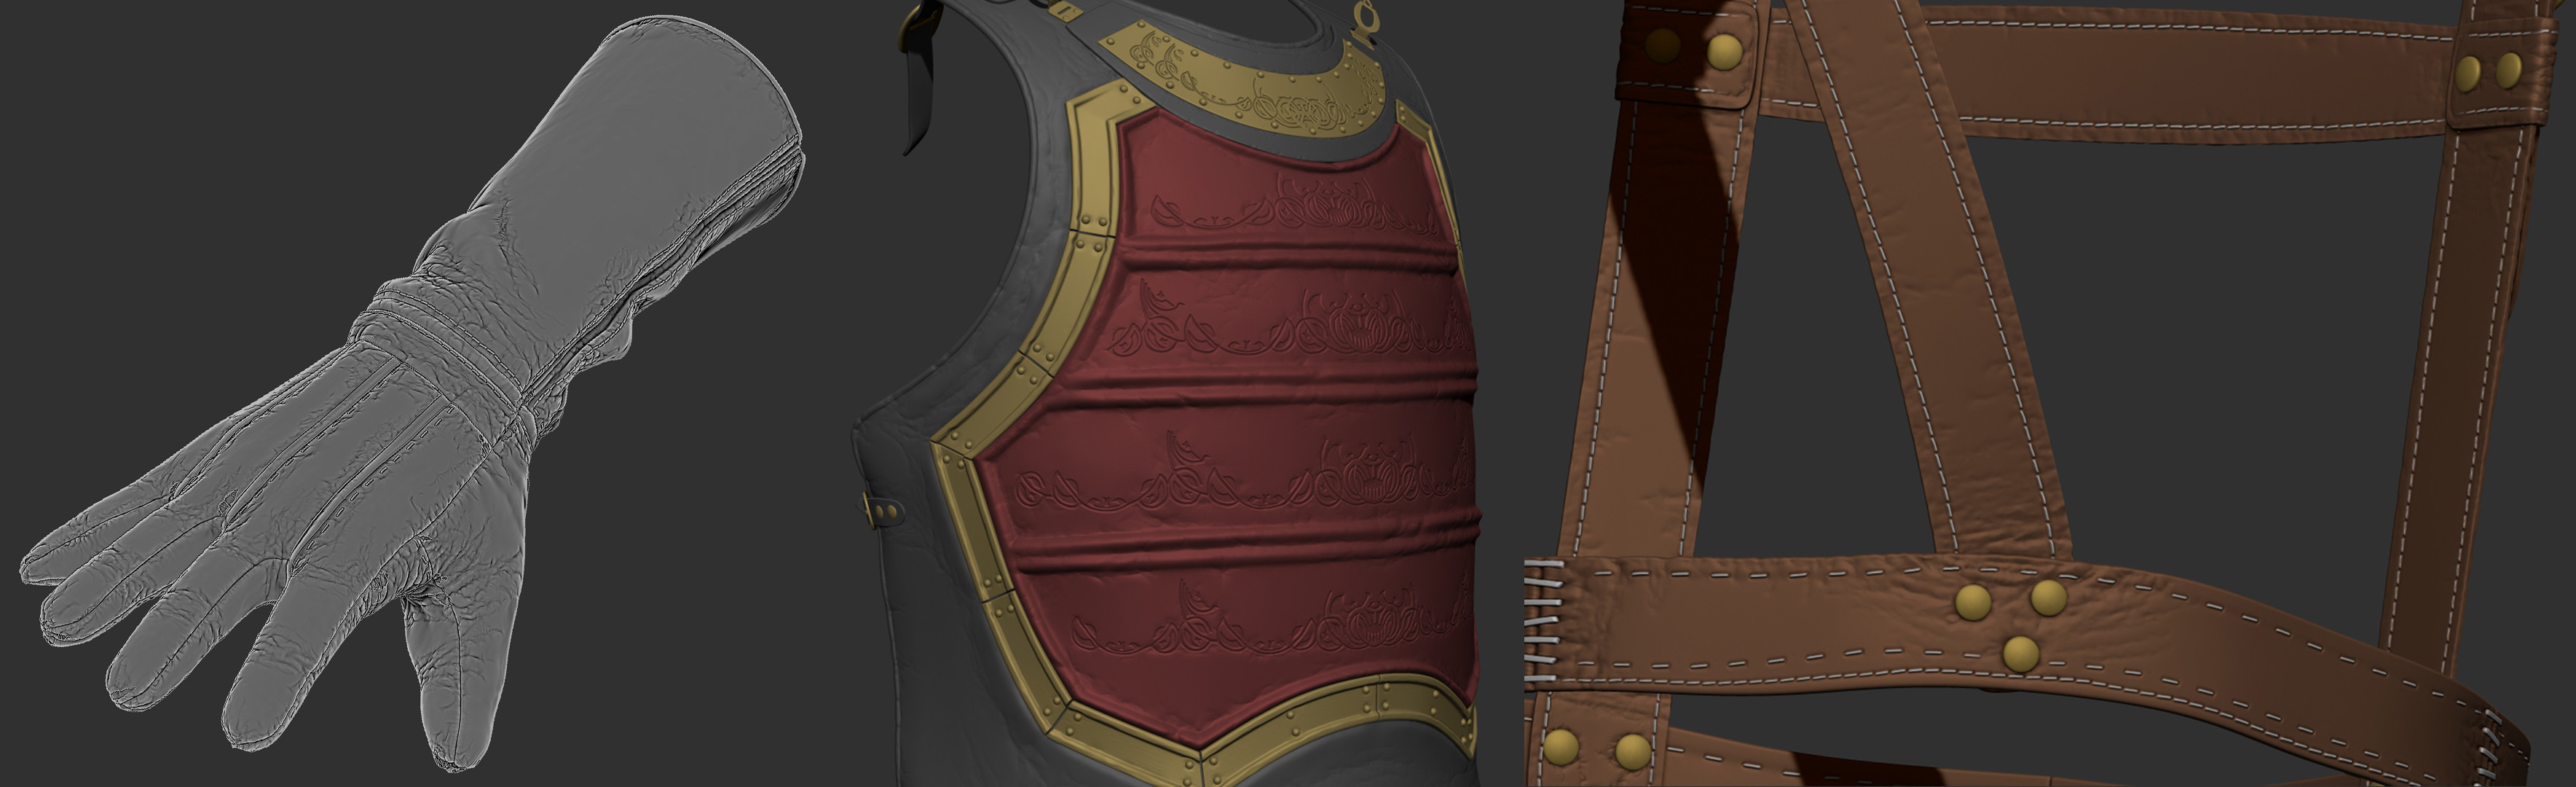 Most of the challenging sculpting was adding details to the leather areas, since I felt pretty confident with my hard surface sculpting.